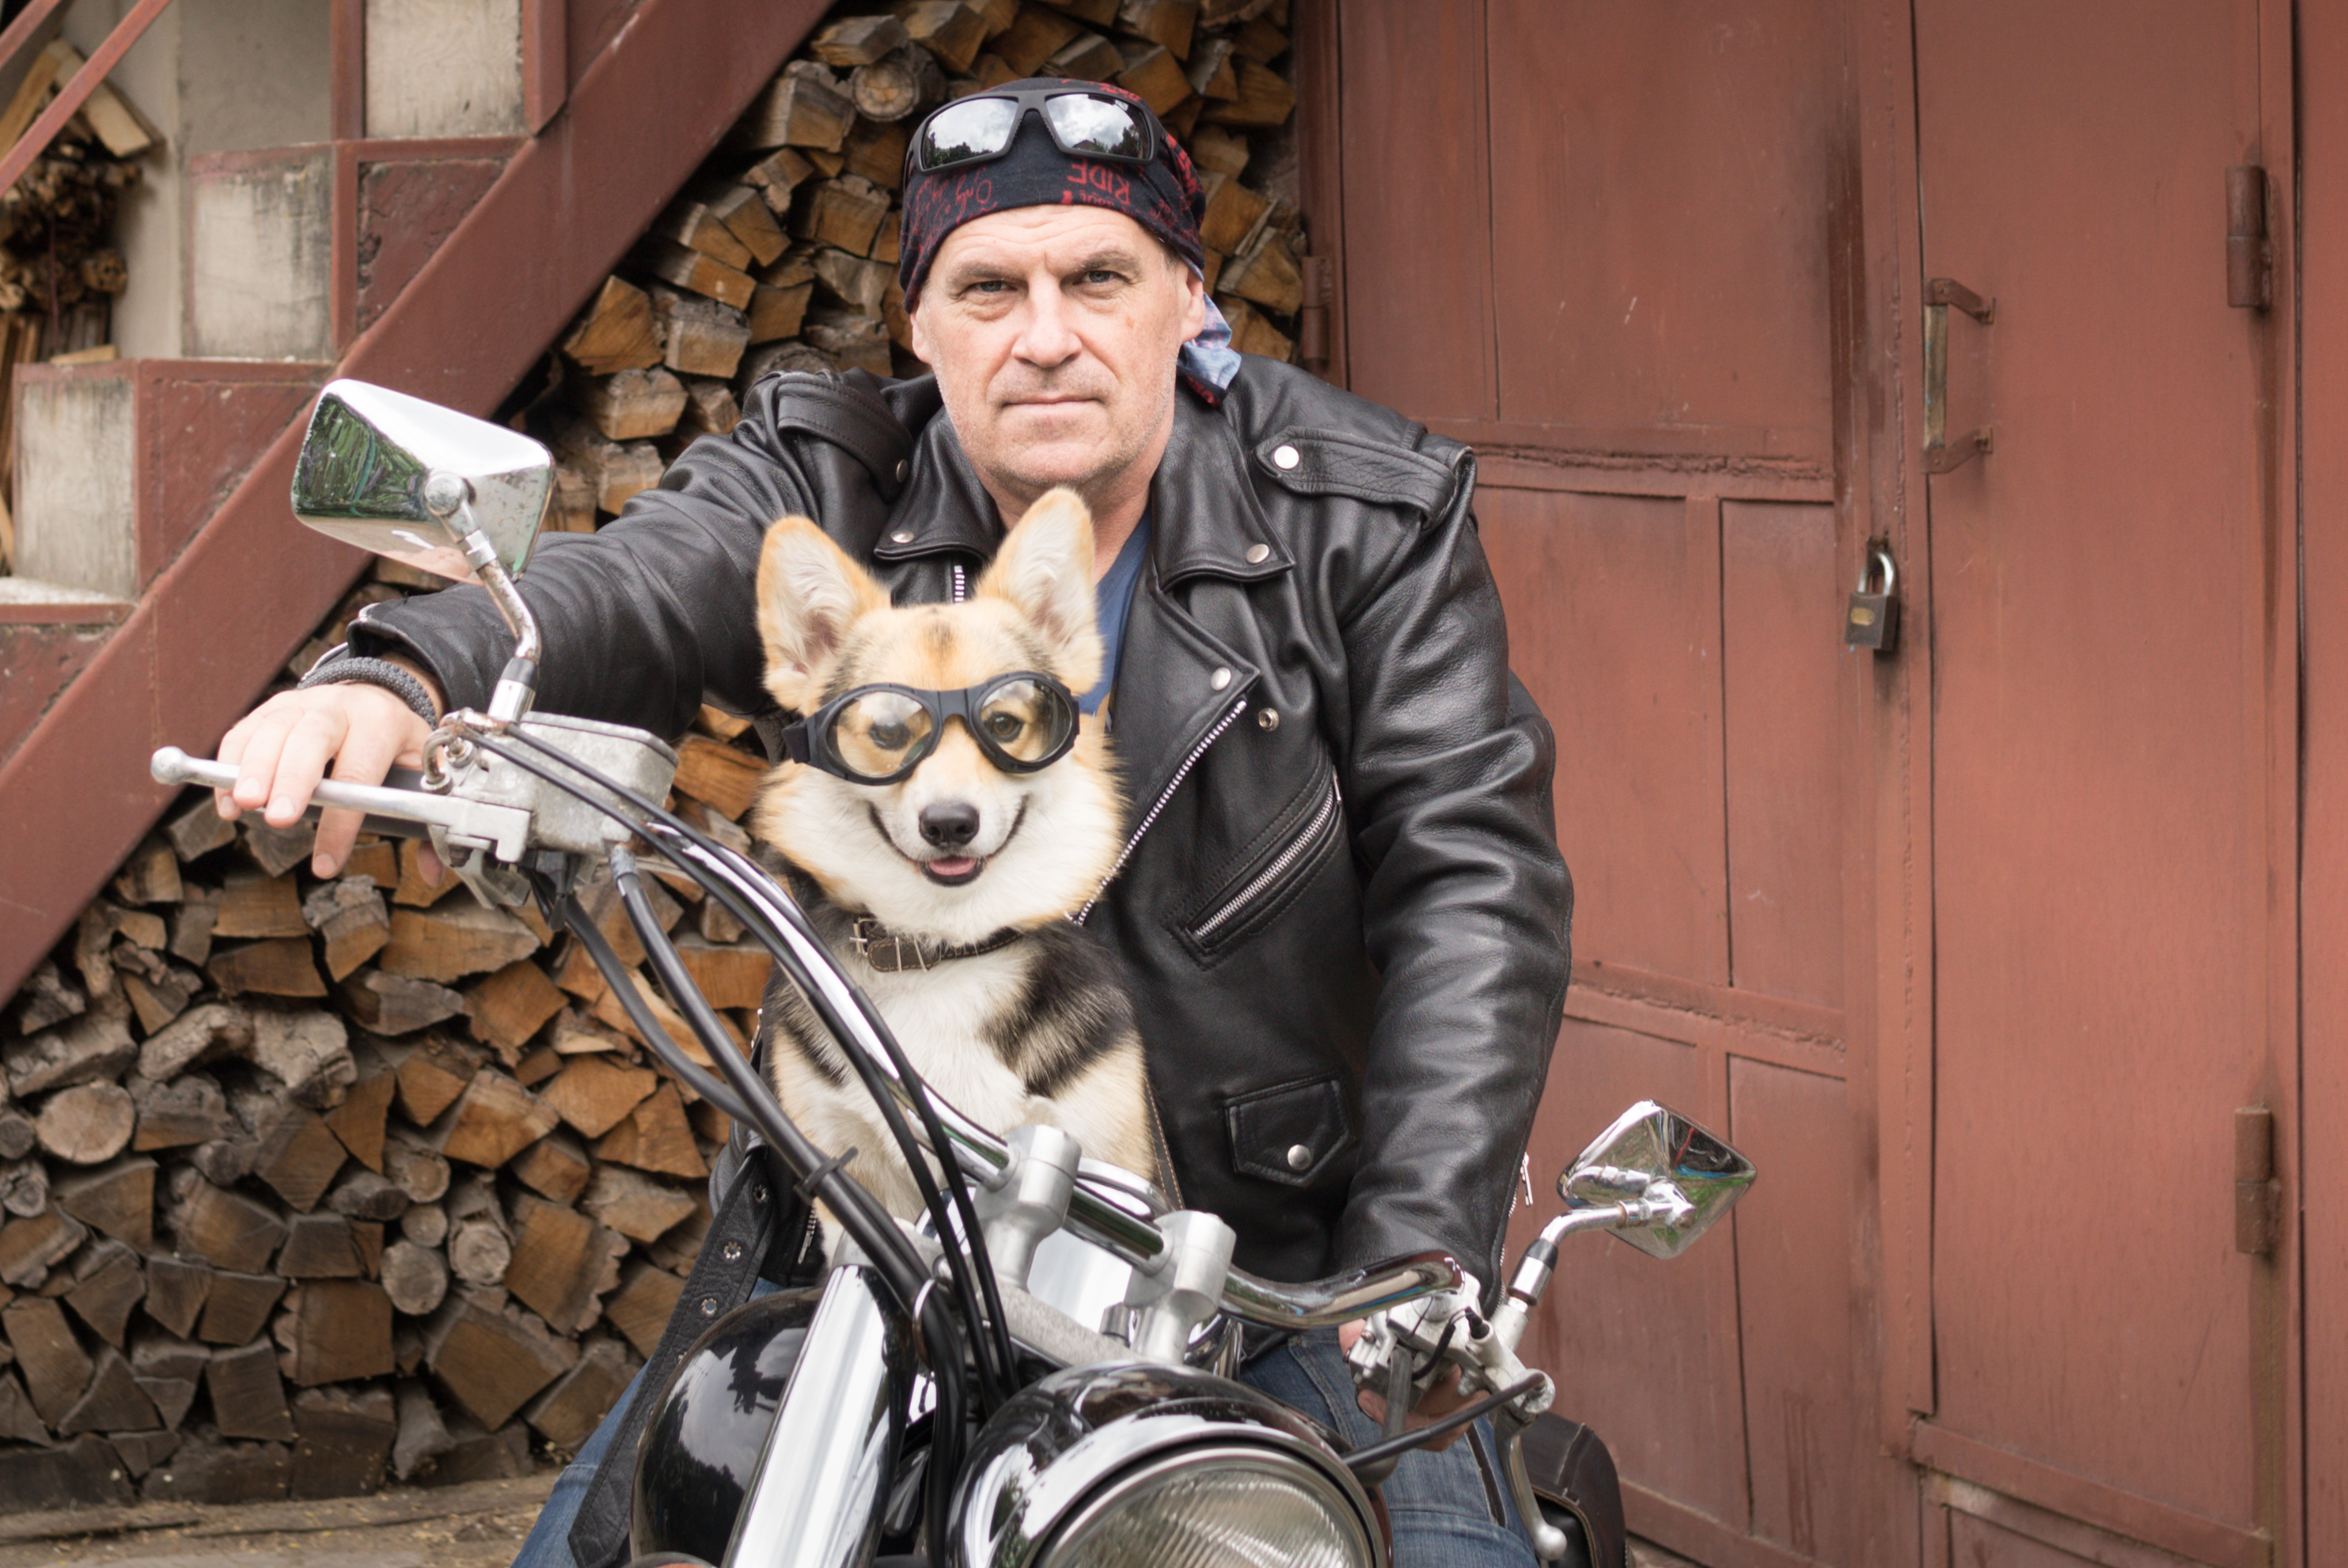 Photo of humor. The biker and his dog are sitting on a motorcycle. | Gifts for Him